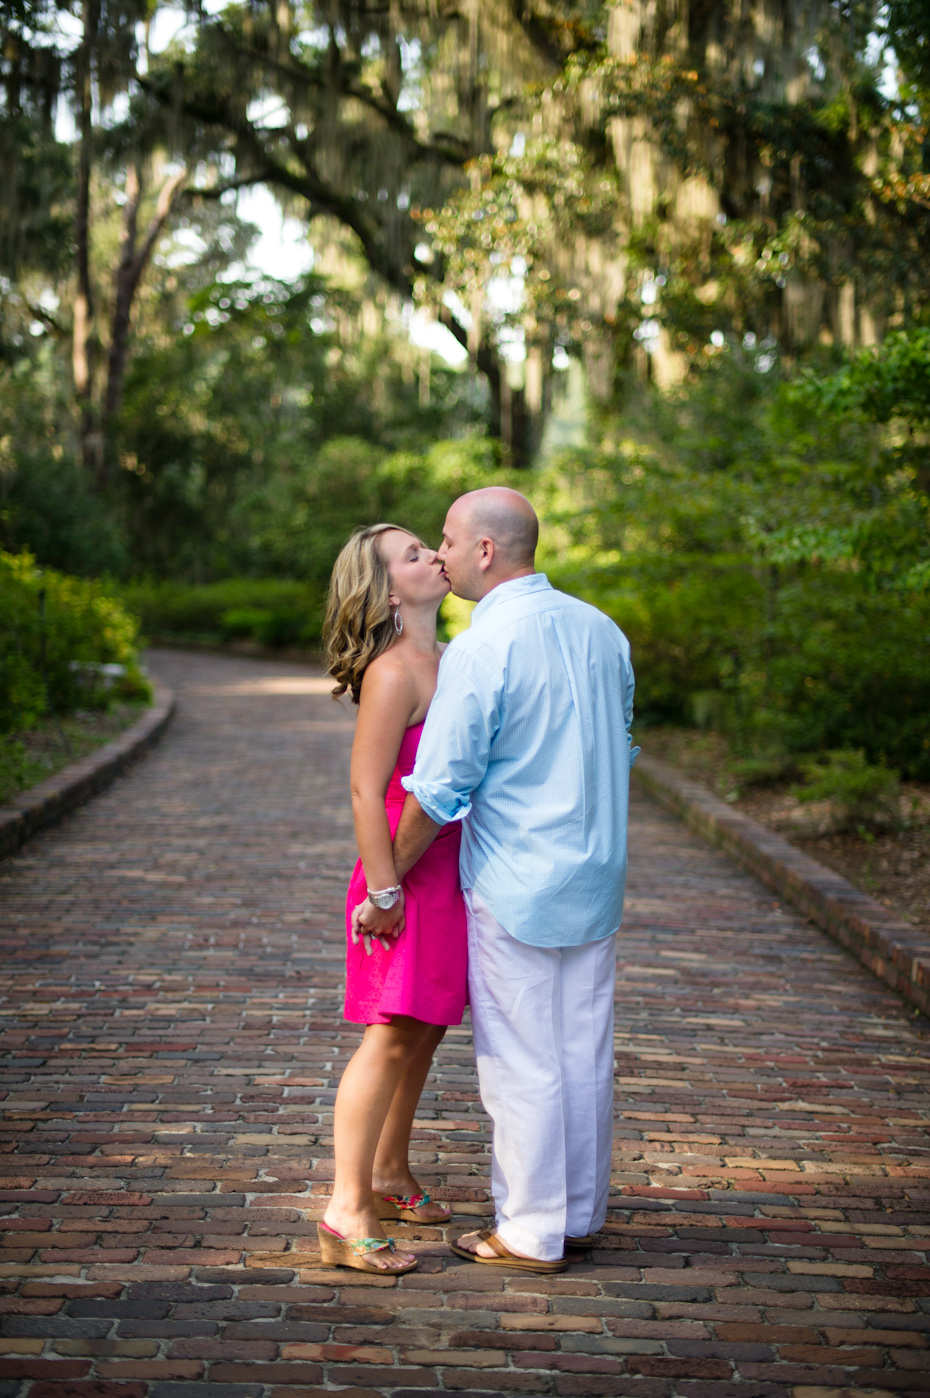 Where to take engagement pictures in Tallahassee